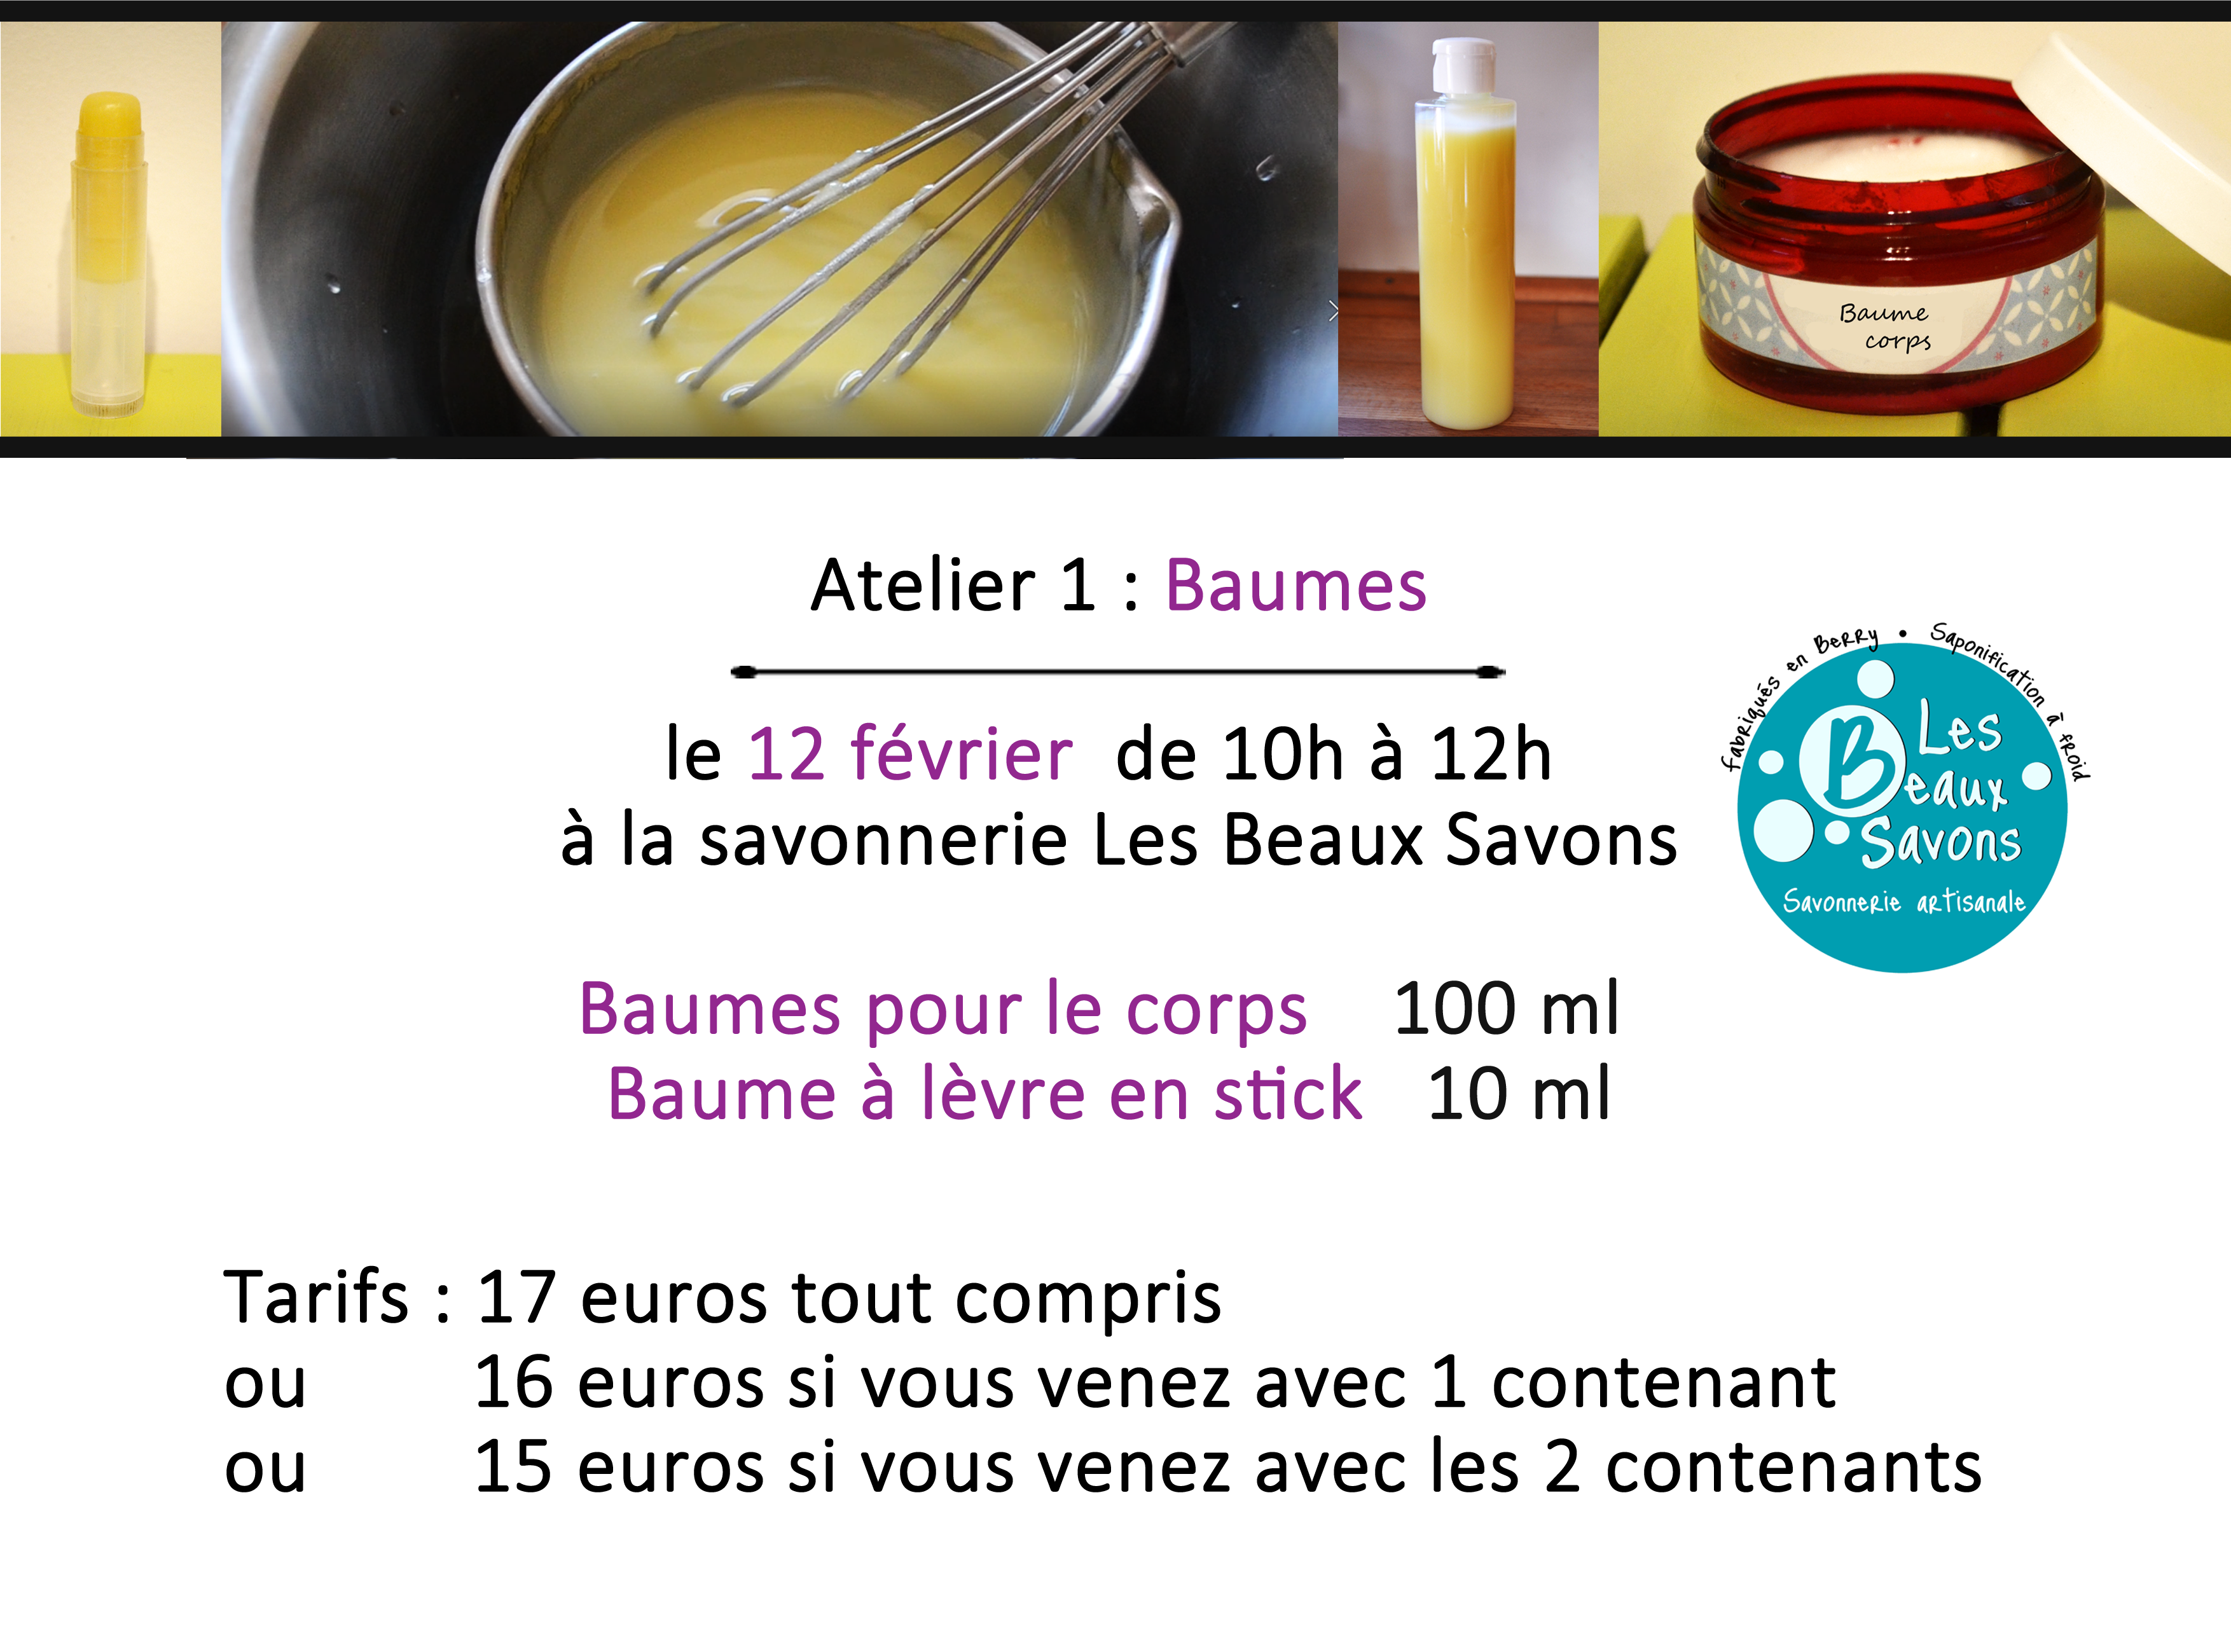 Ateliers%201%20Baumes.png